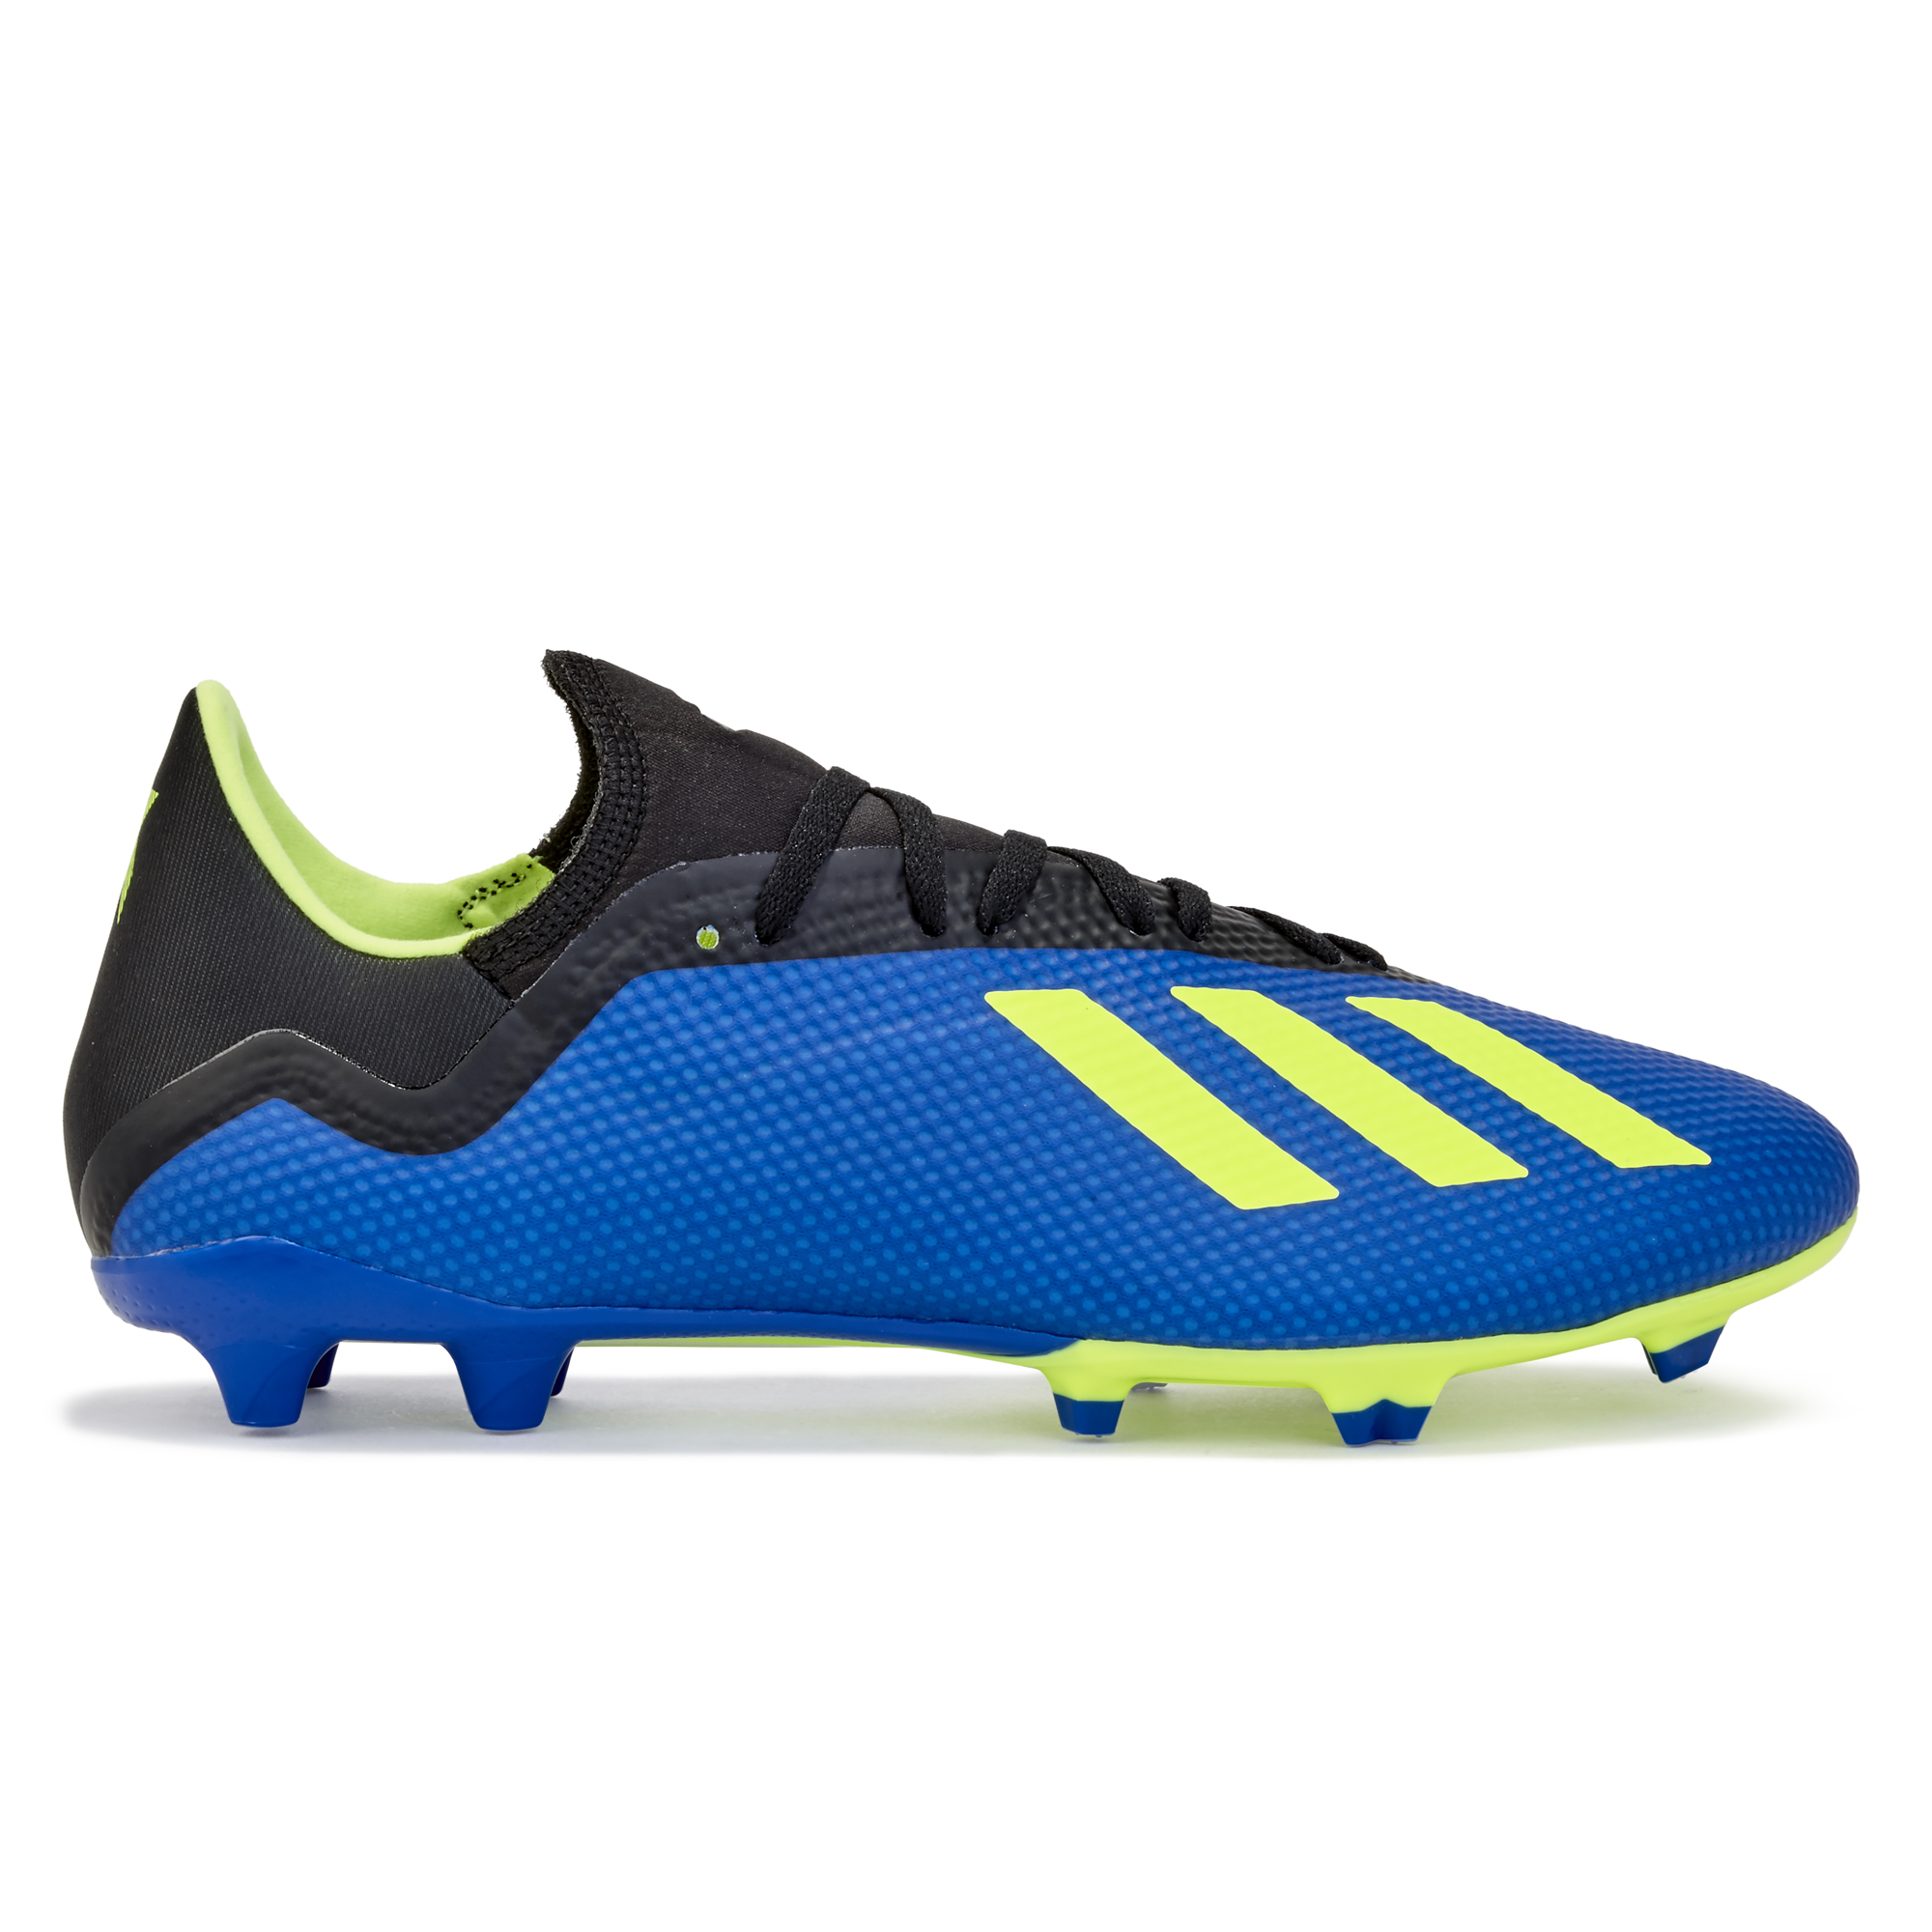 Image of adidas X 18.3 Firm Ground Football Boots - Blue